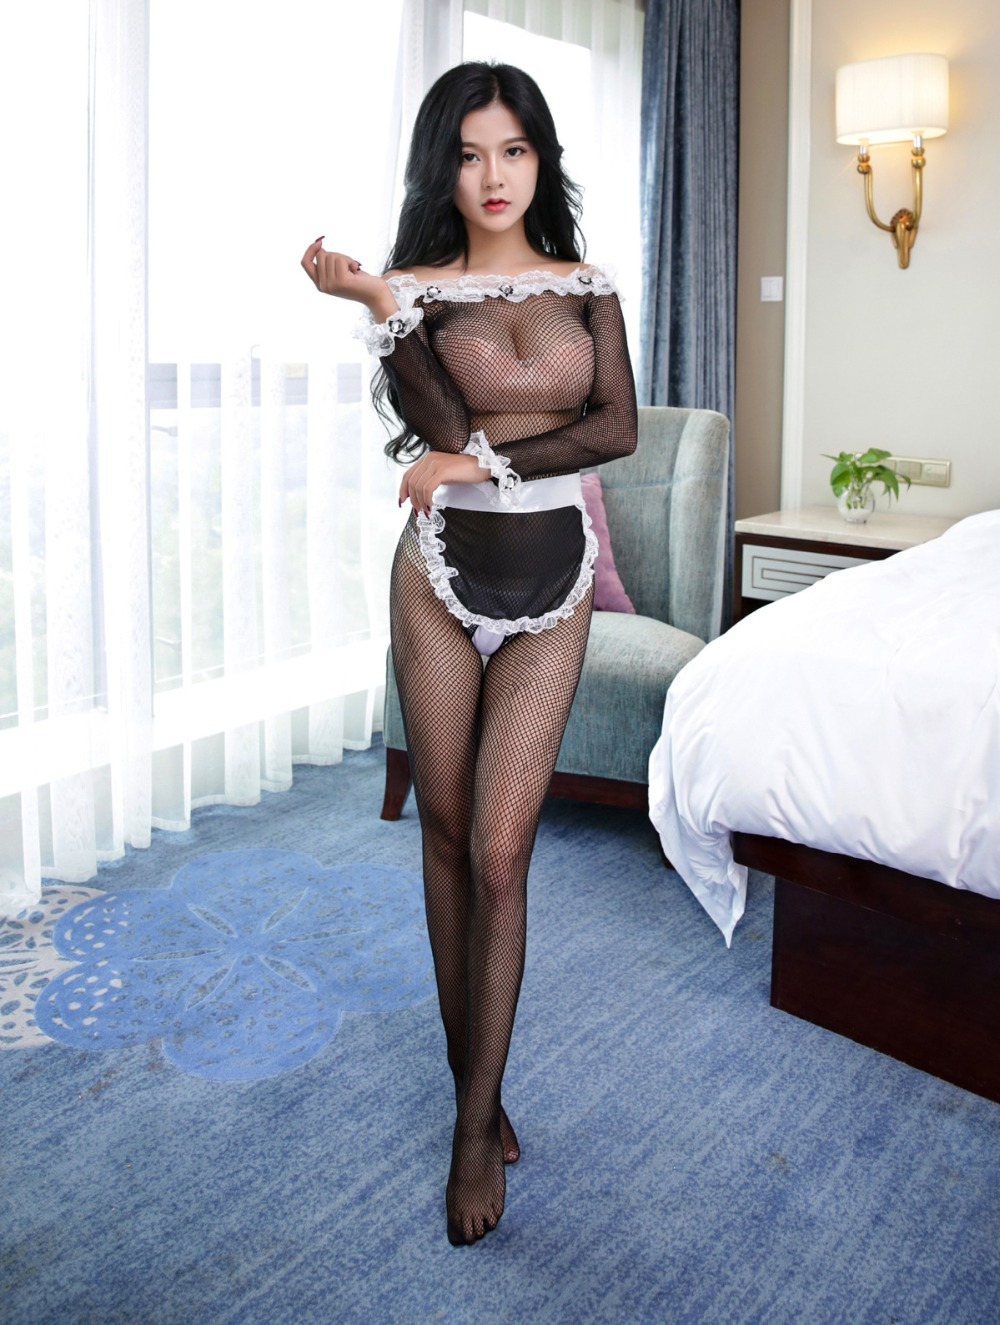 Sexy Maid Clothes Lolita Maid Outfit Black Lace Hot Sexy Lady Uniform temptation sexy costumes porn Adult Sex Games erotic